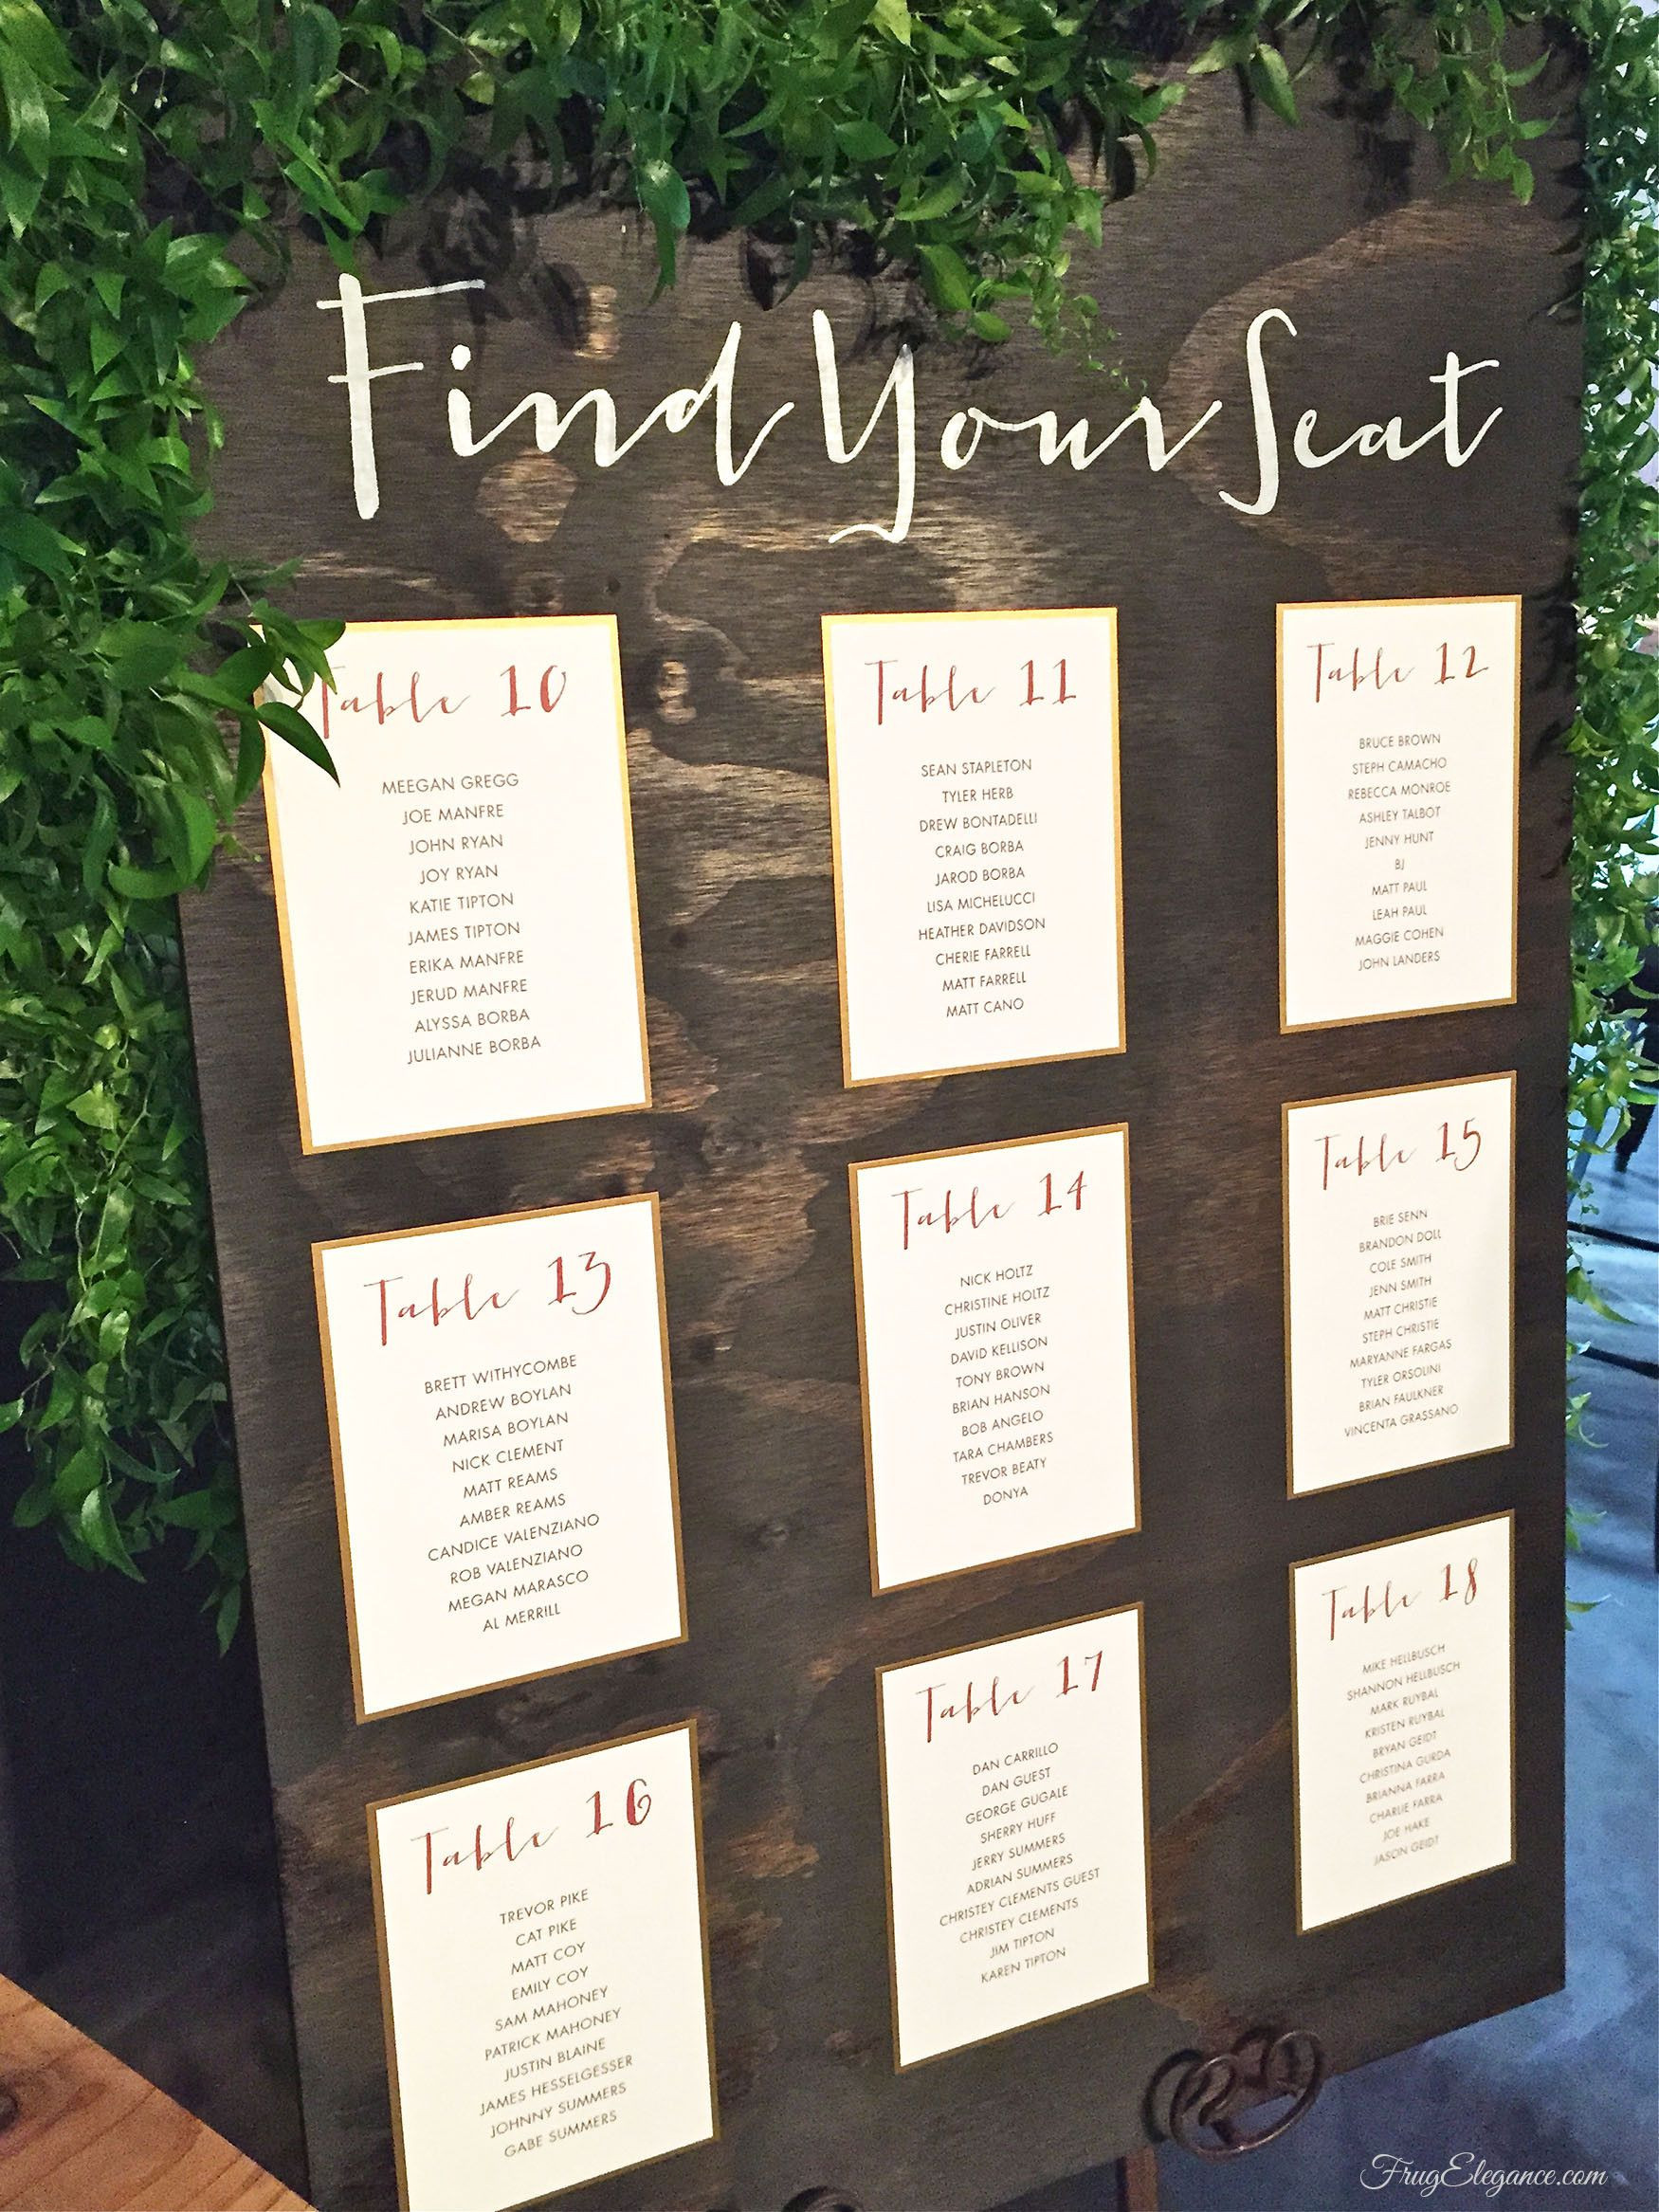 Best ideas about DIY Wedding Seating Chart . Save or Pin diy wedding seating chart Google Search Now.